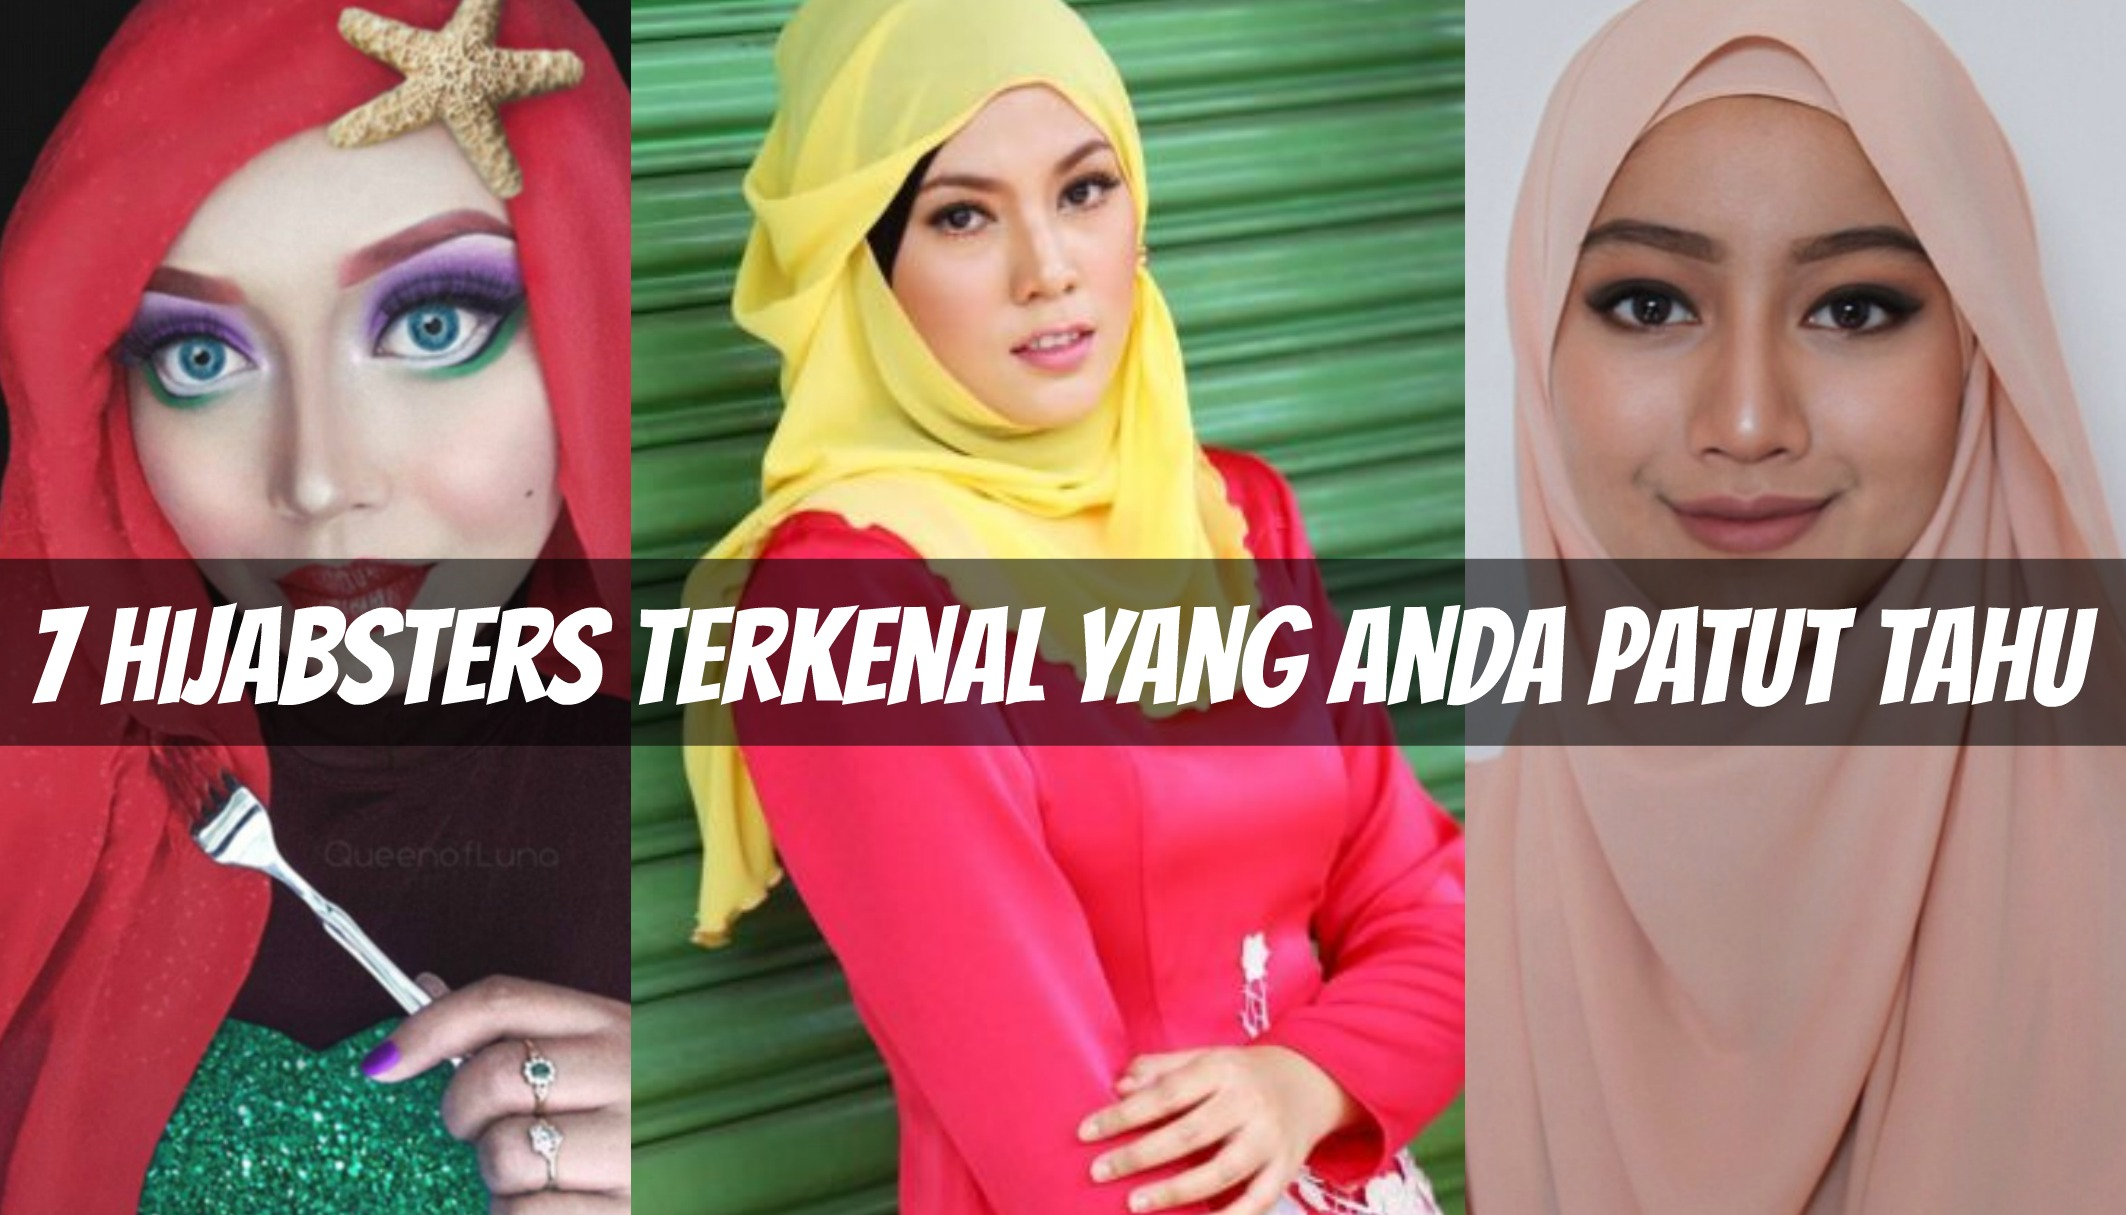 hijabsters-fb-cover